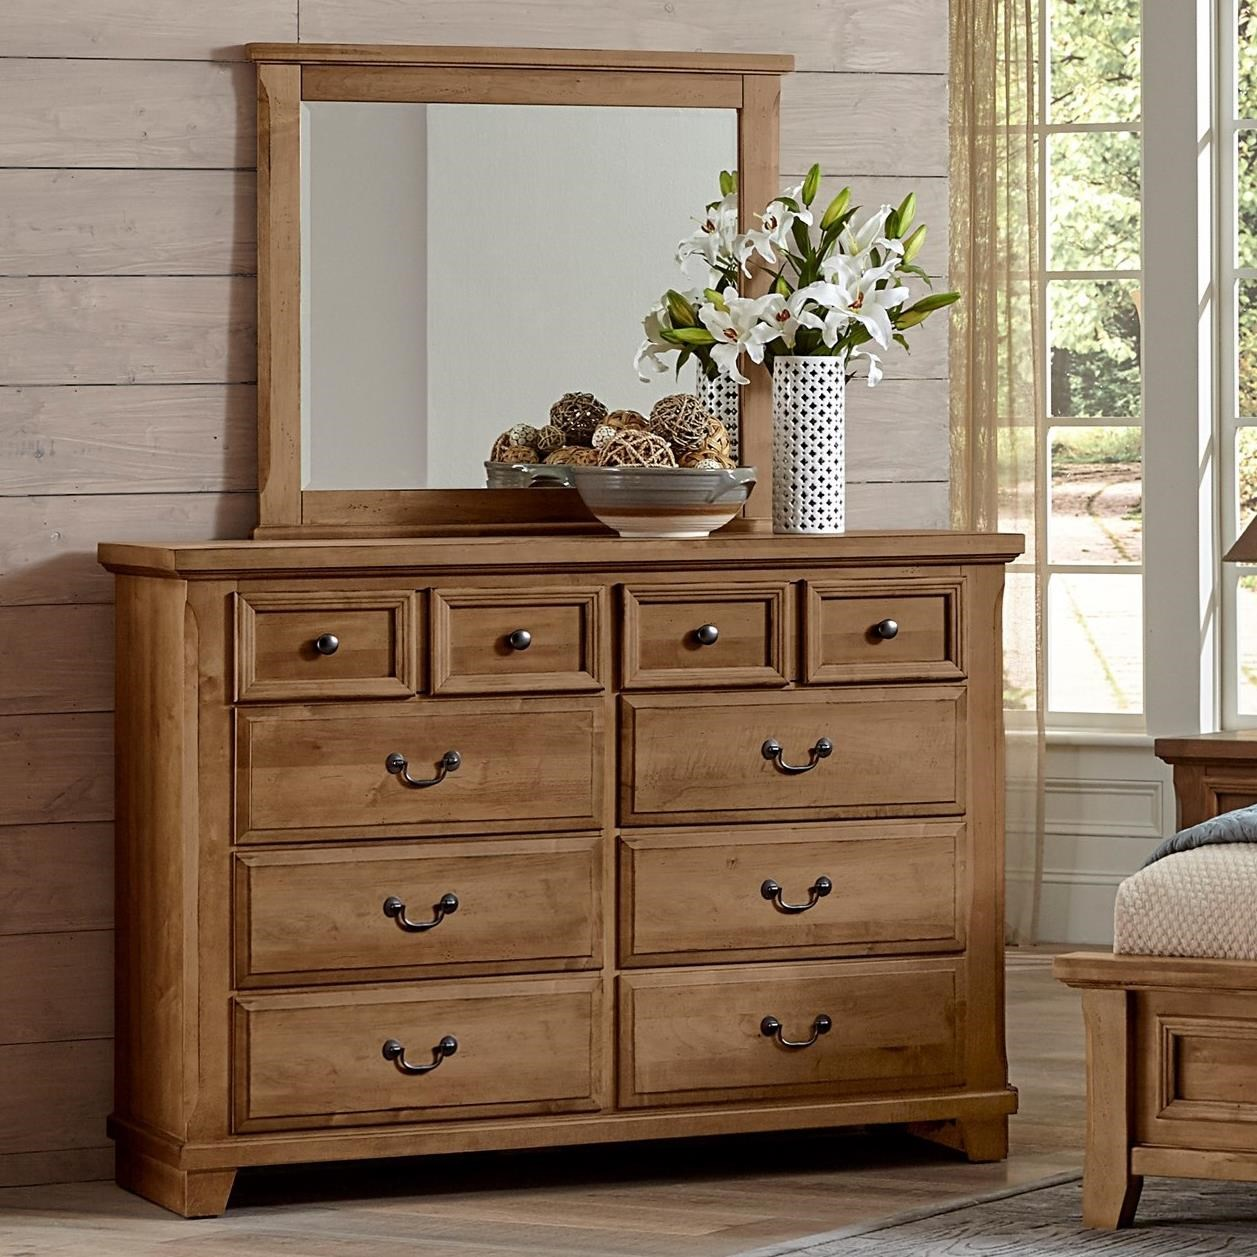 Vaughan Bassett Timber Creek Bureau Landscape Mirror Dunk Bright Furniture Dresser